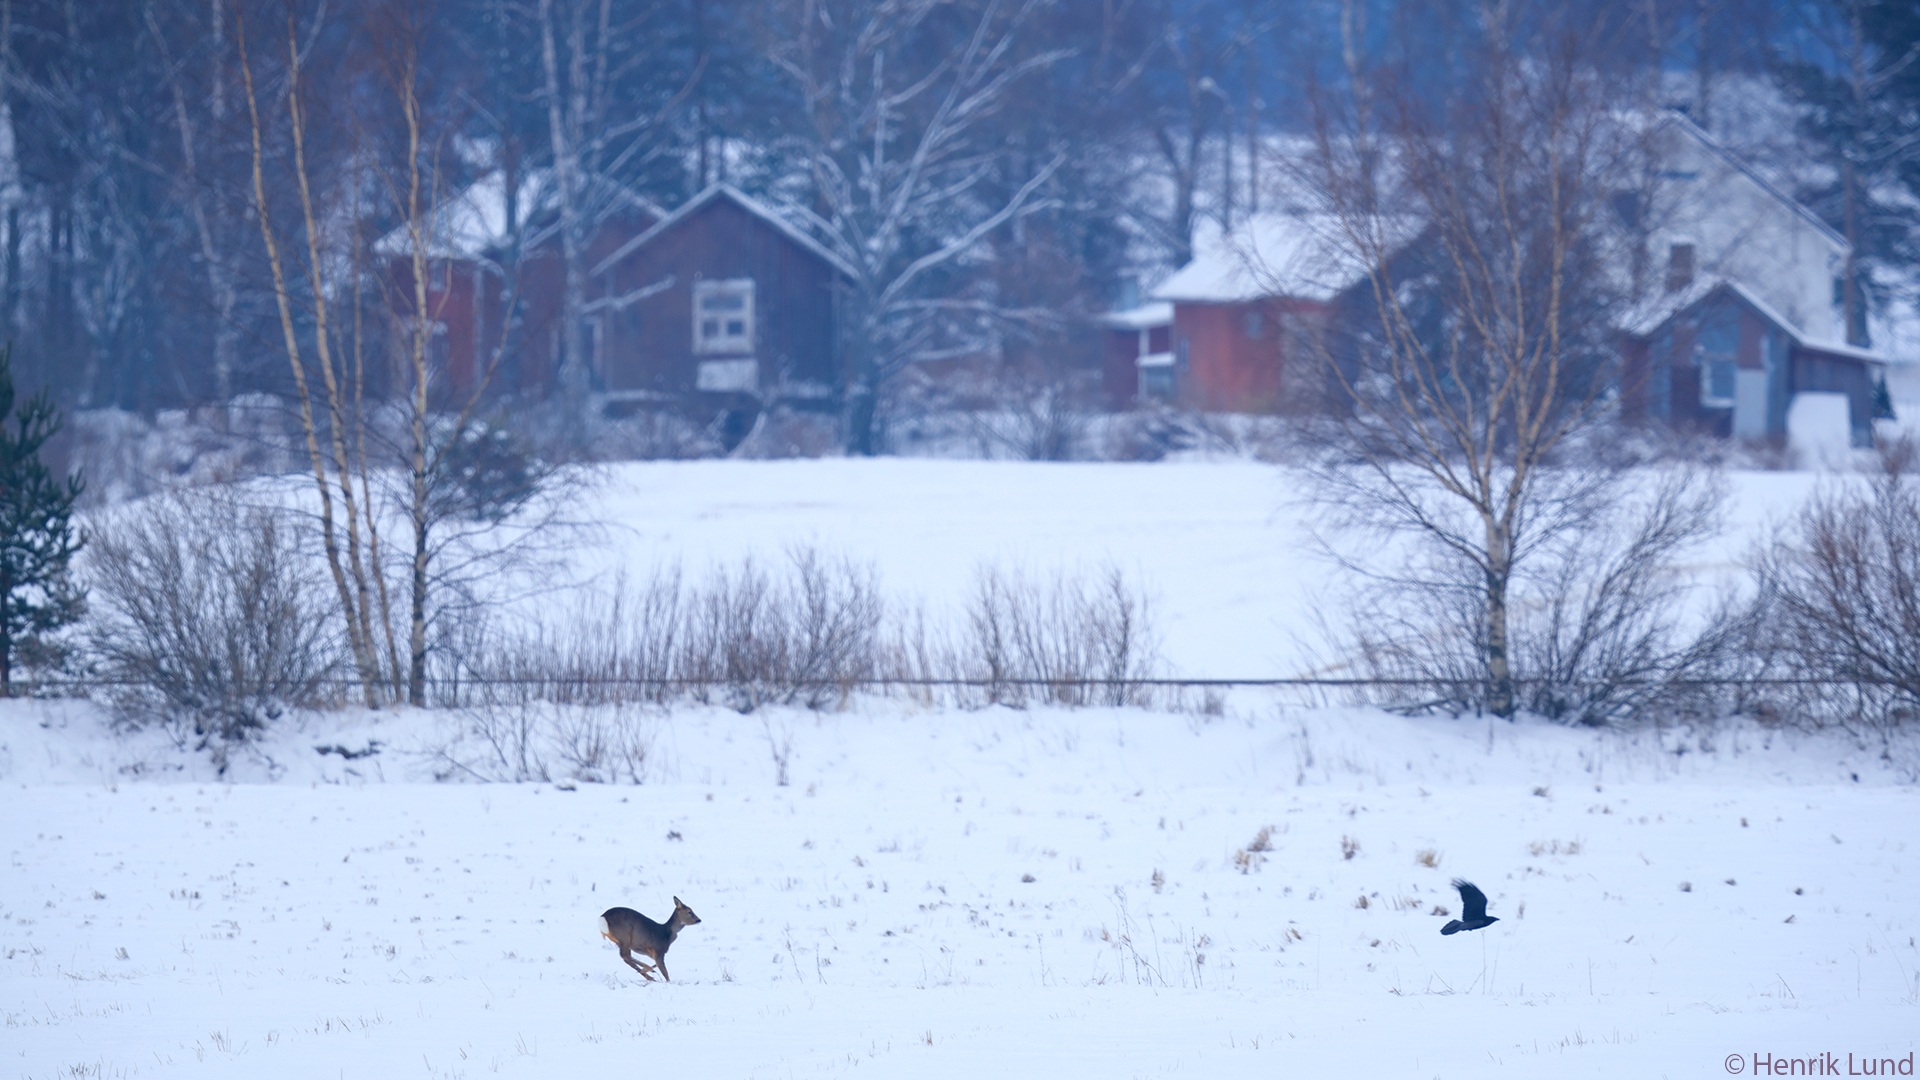 Roe deer chasing a crow on the fields at Andersby in Loviisa, Finland. February 2018.